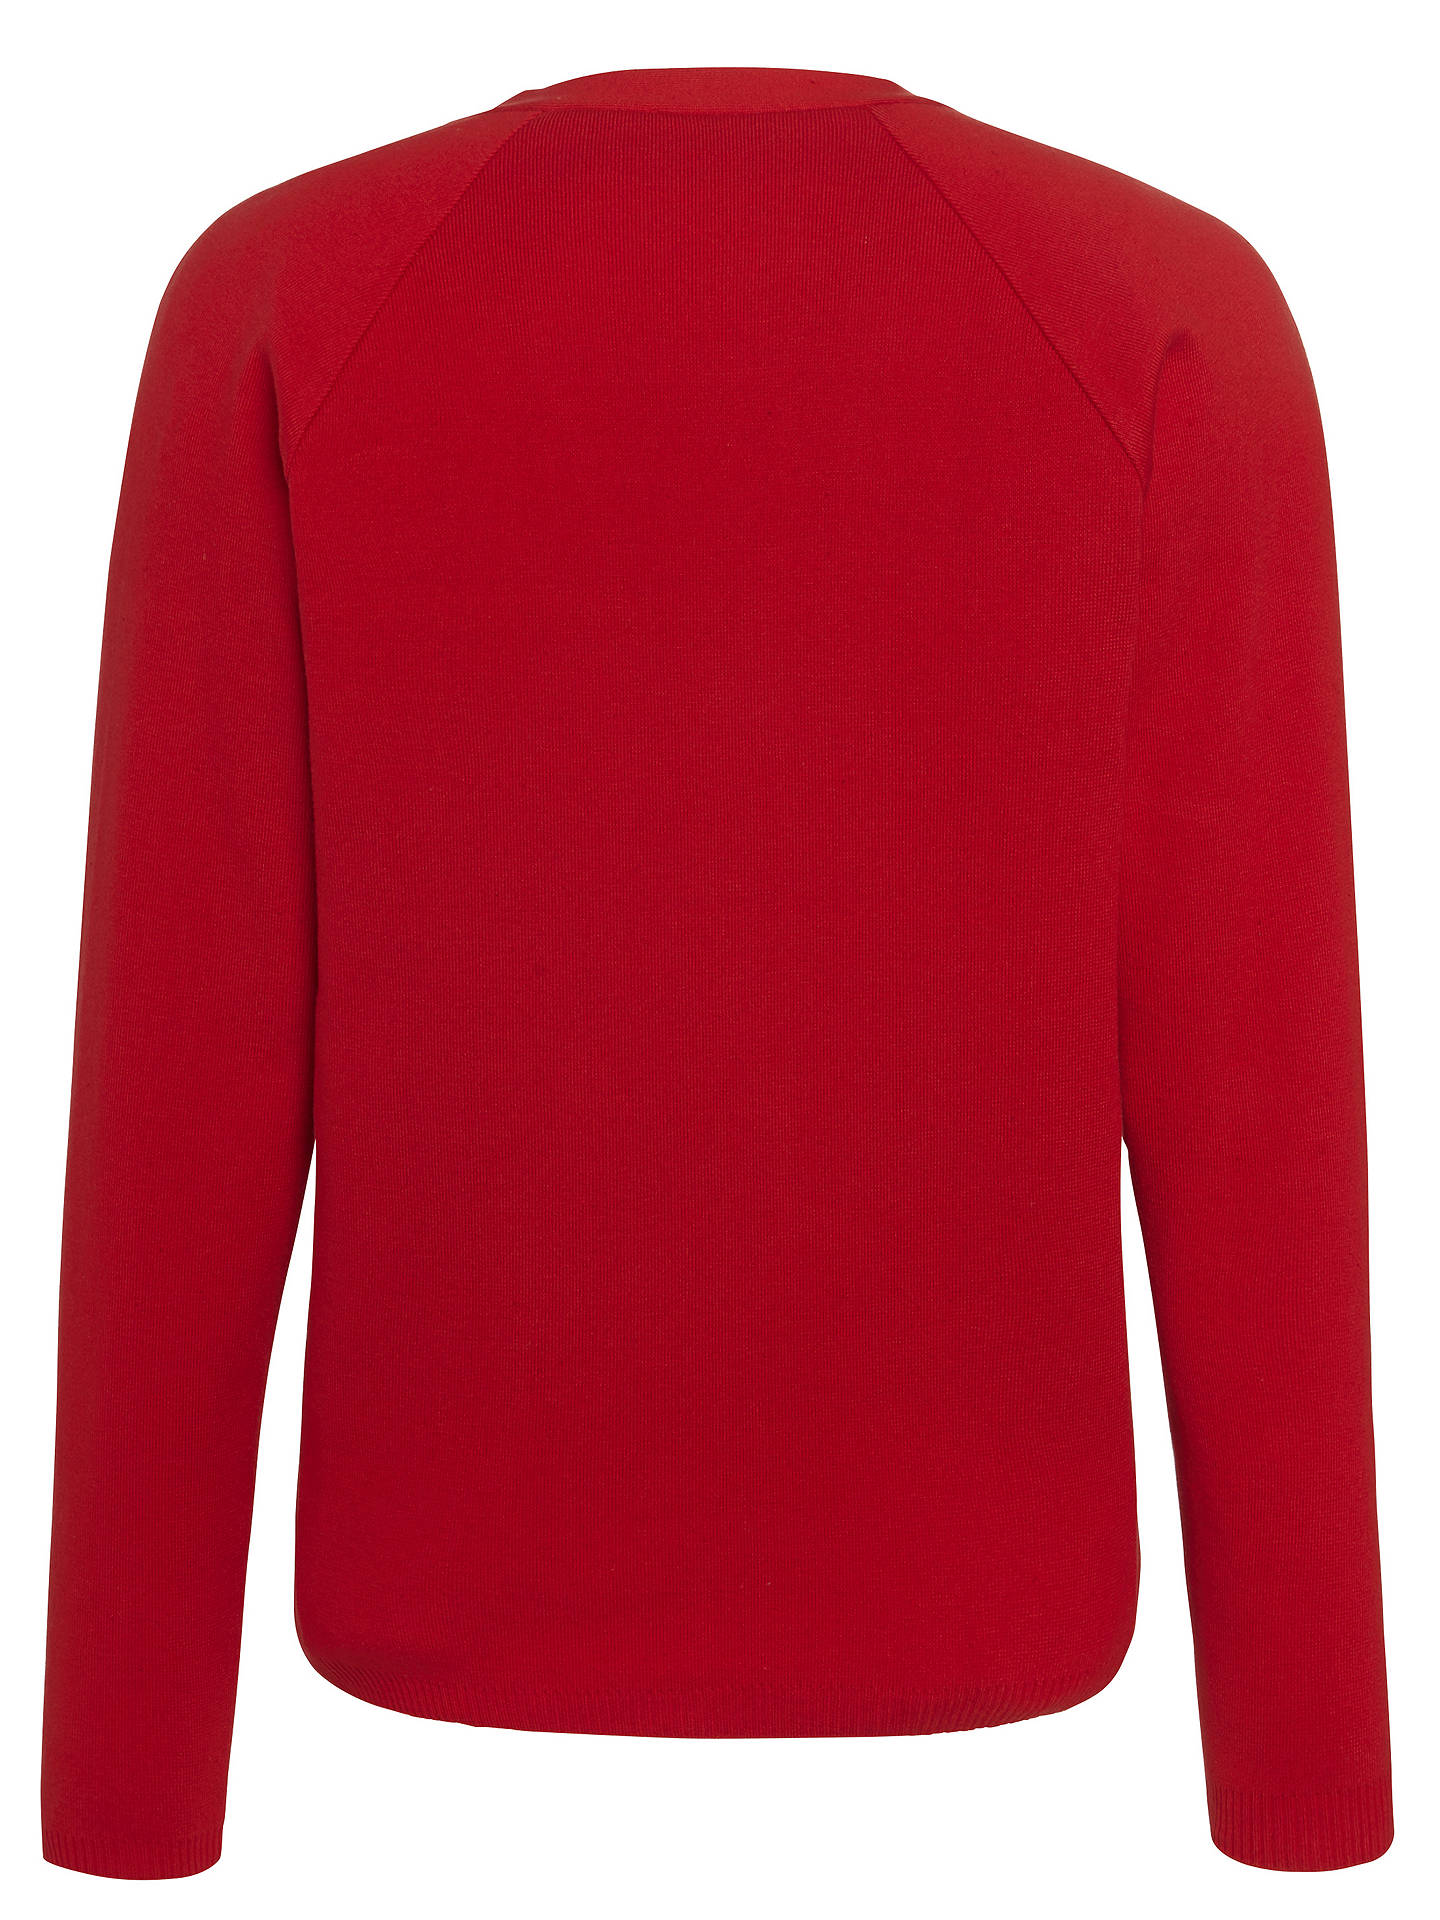 "BuyNottingham High School Unisex Cardigan, Red, Chest 30"" Online at johnlewis.com"